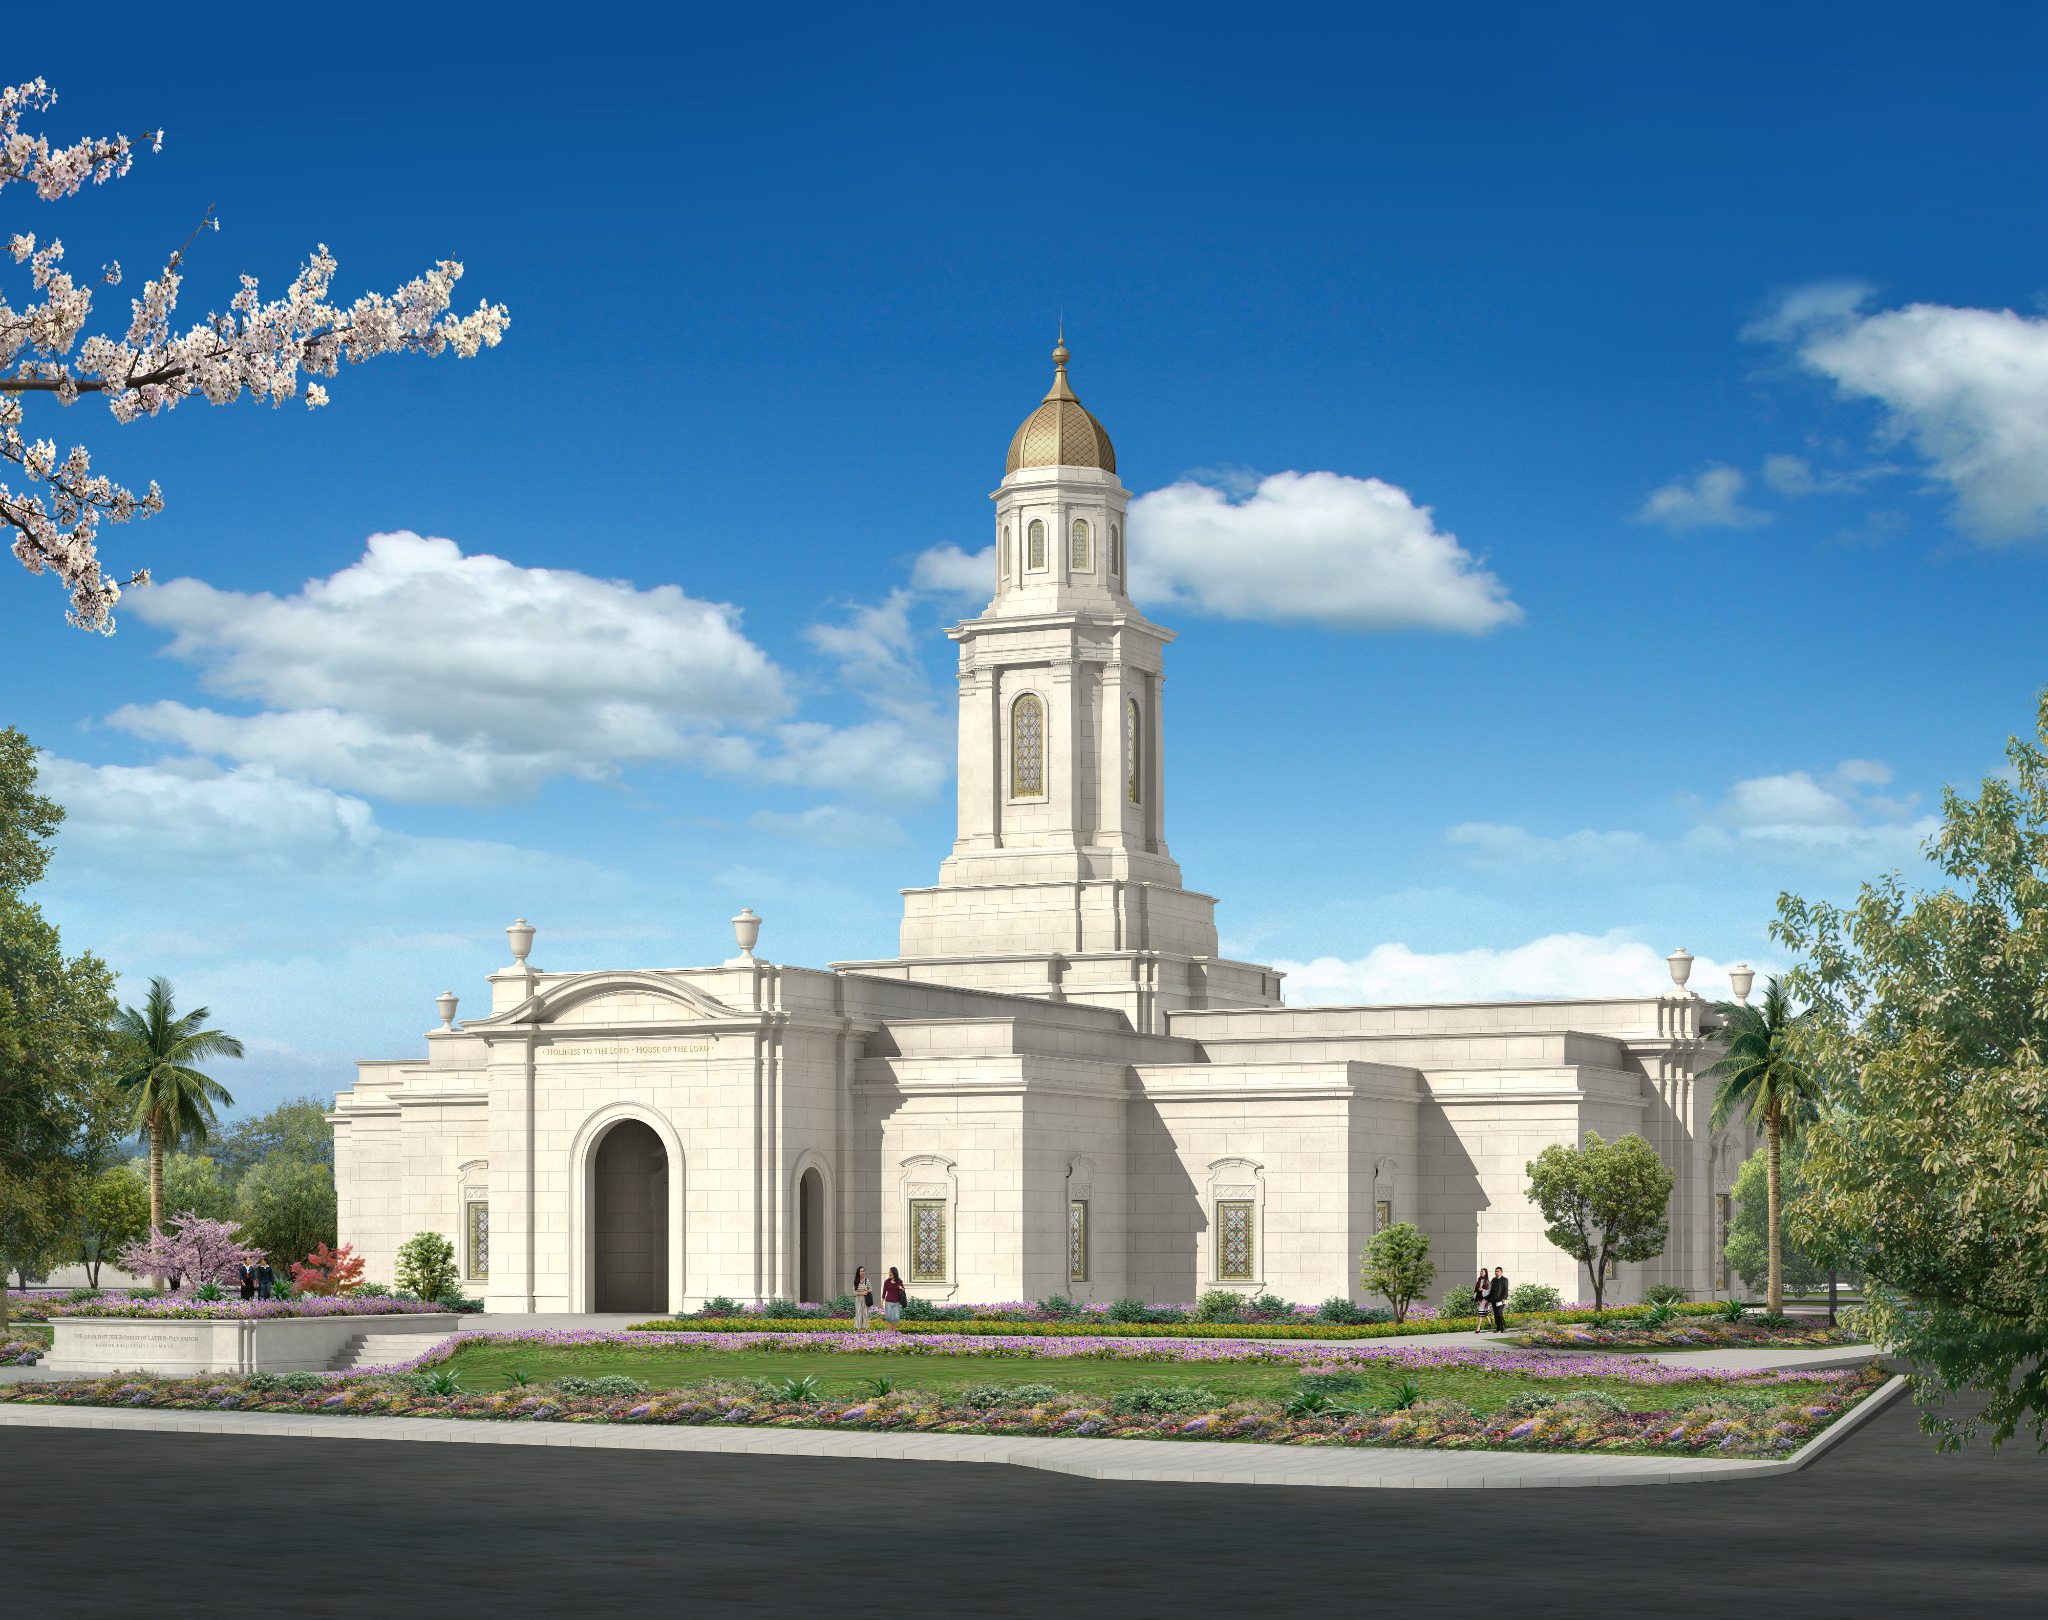 An artist's rendering of the Bacolod Philippines Temple.